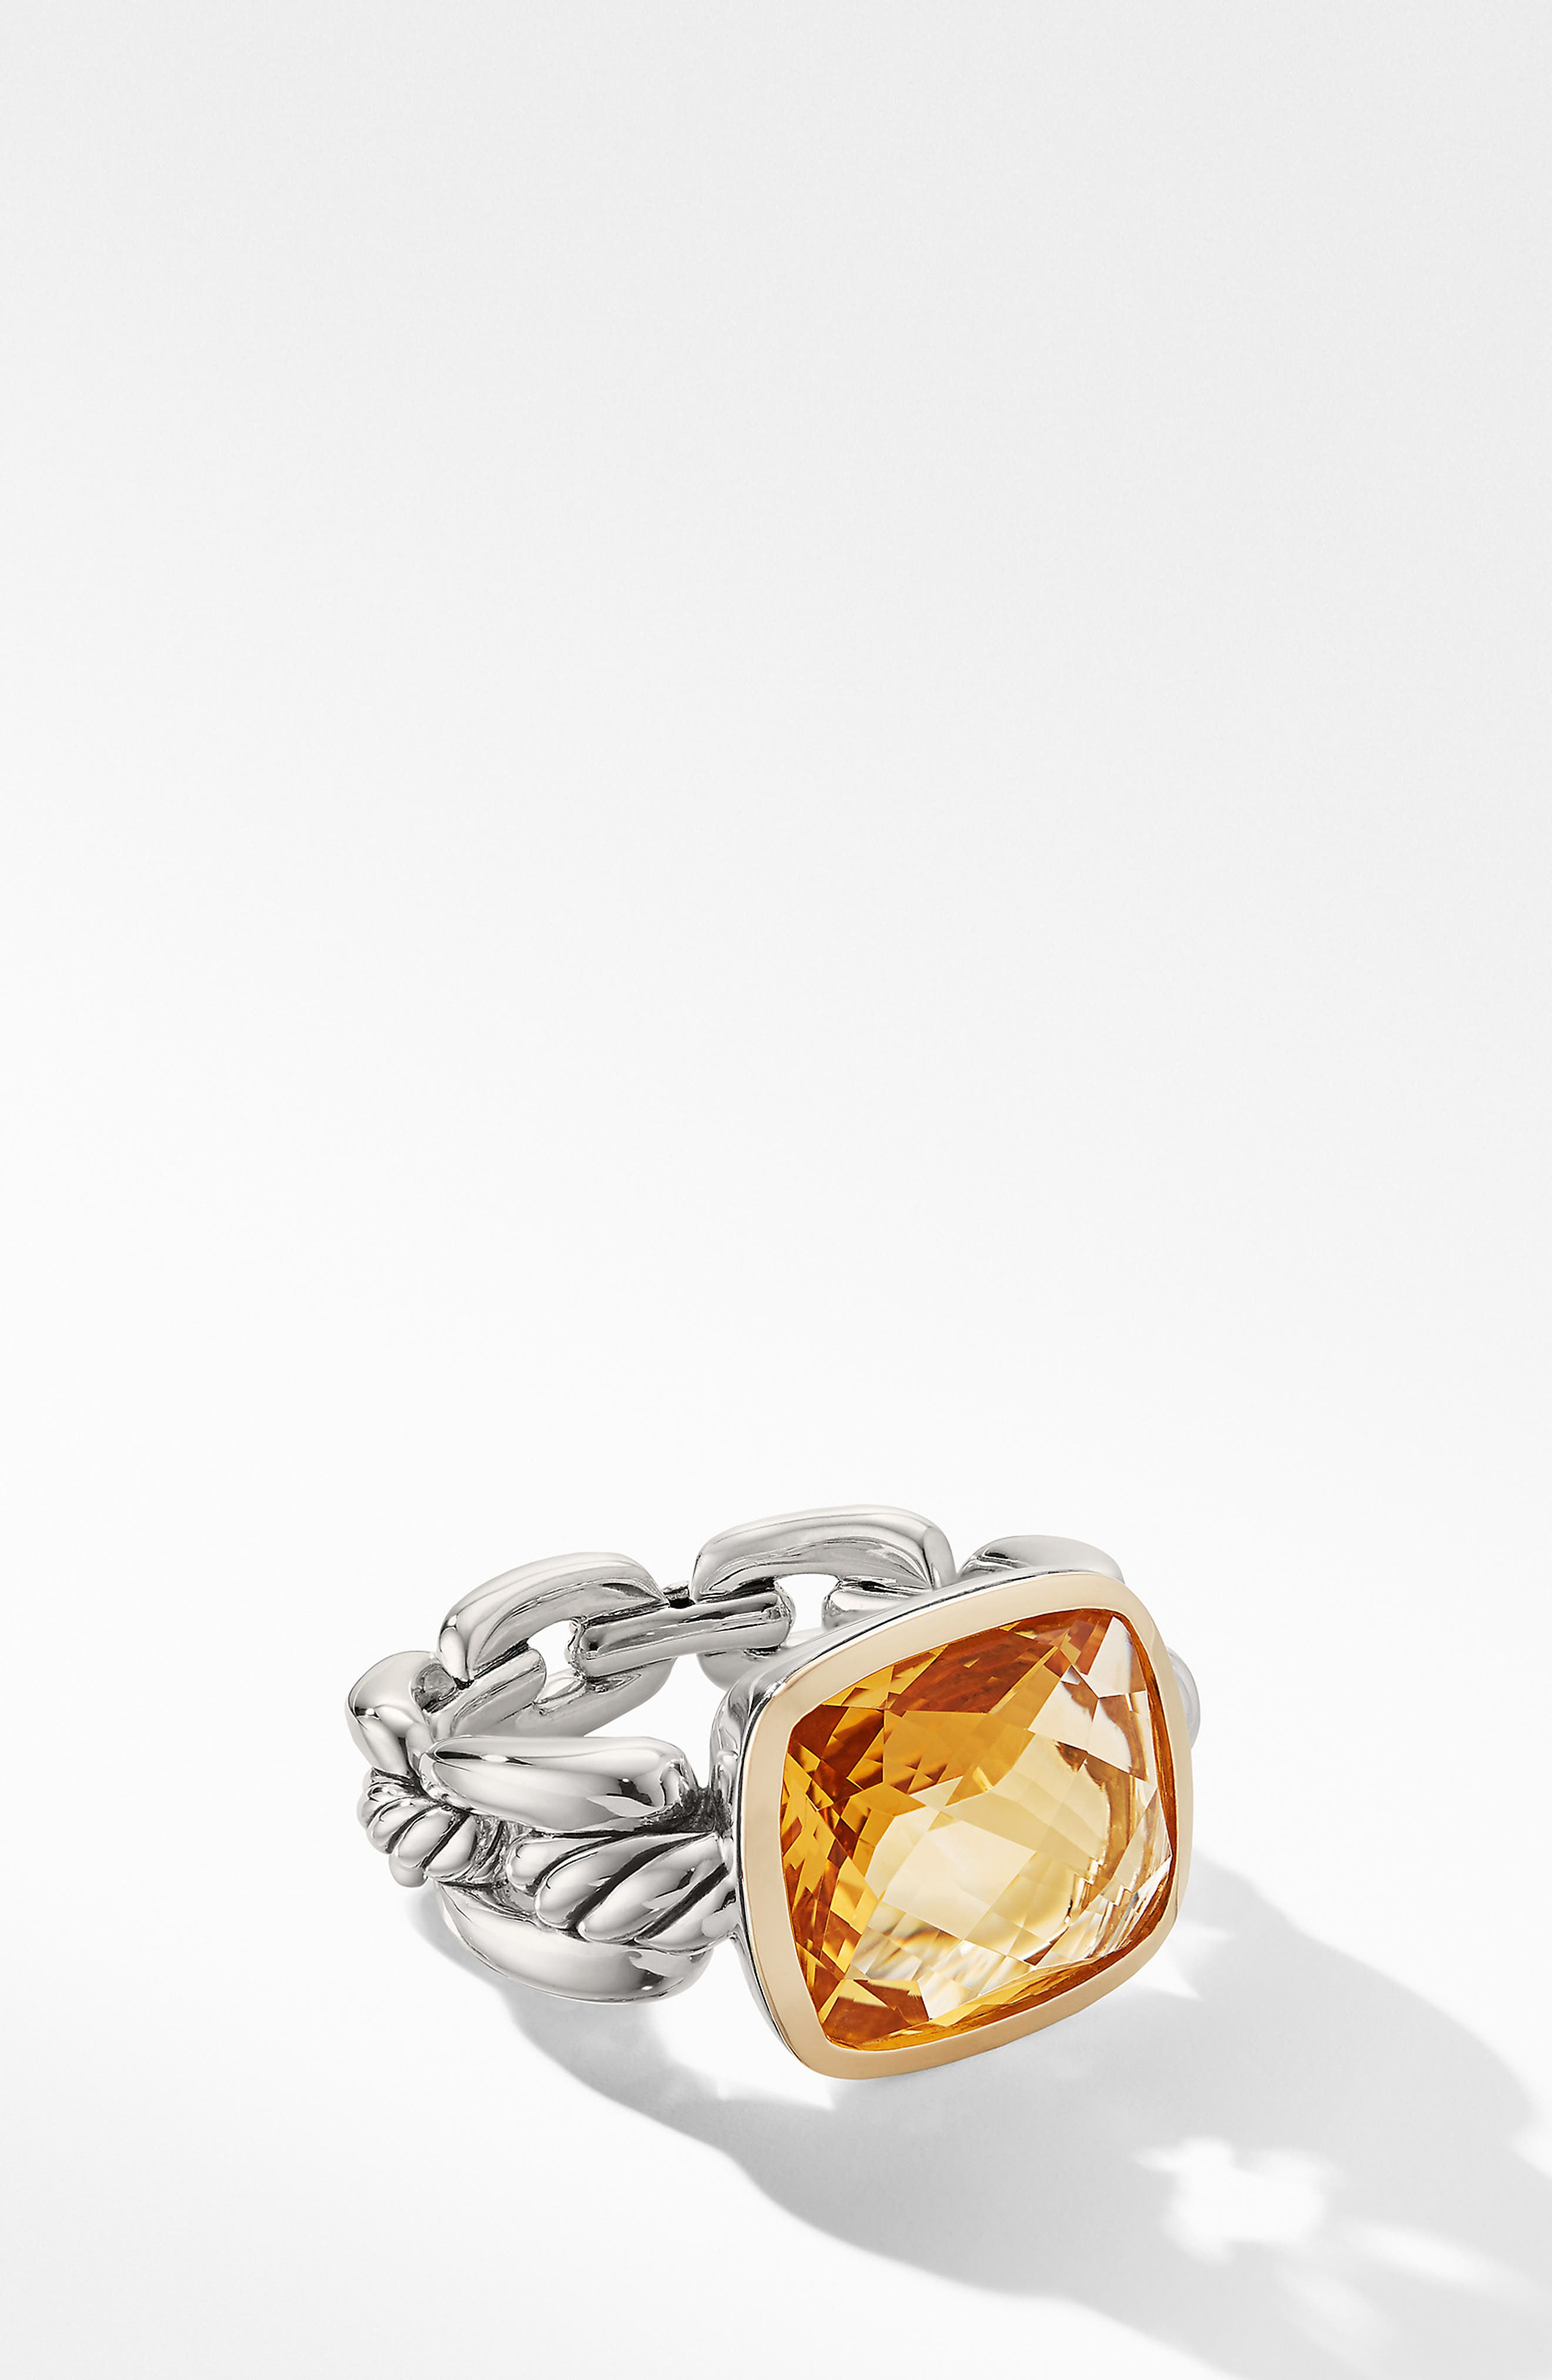 Wellesley Link Statement Ring with 18K Gold,                             Alternate thumbnail 2, color,                             SILVER/ CITRINE